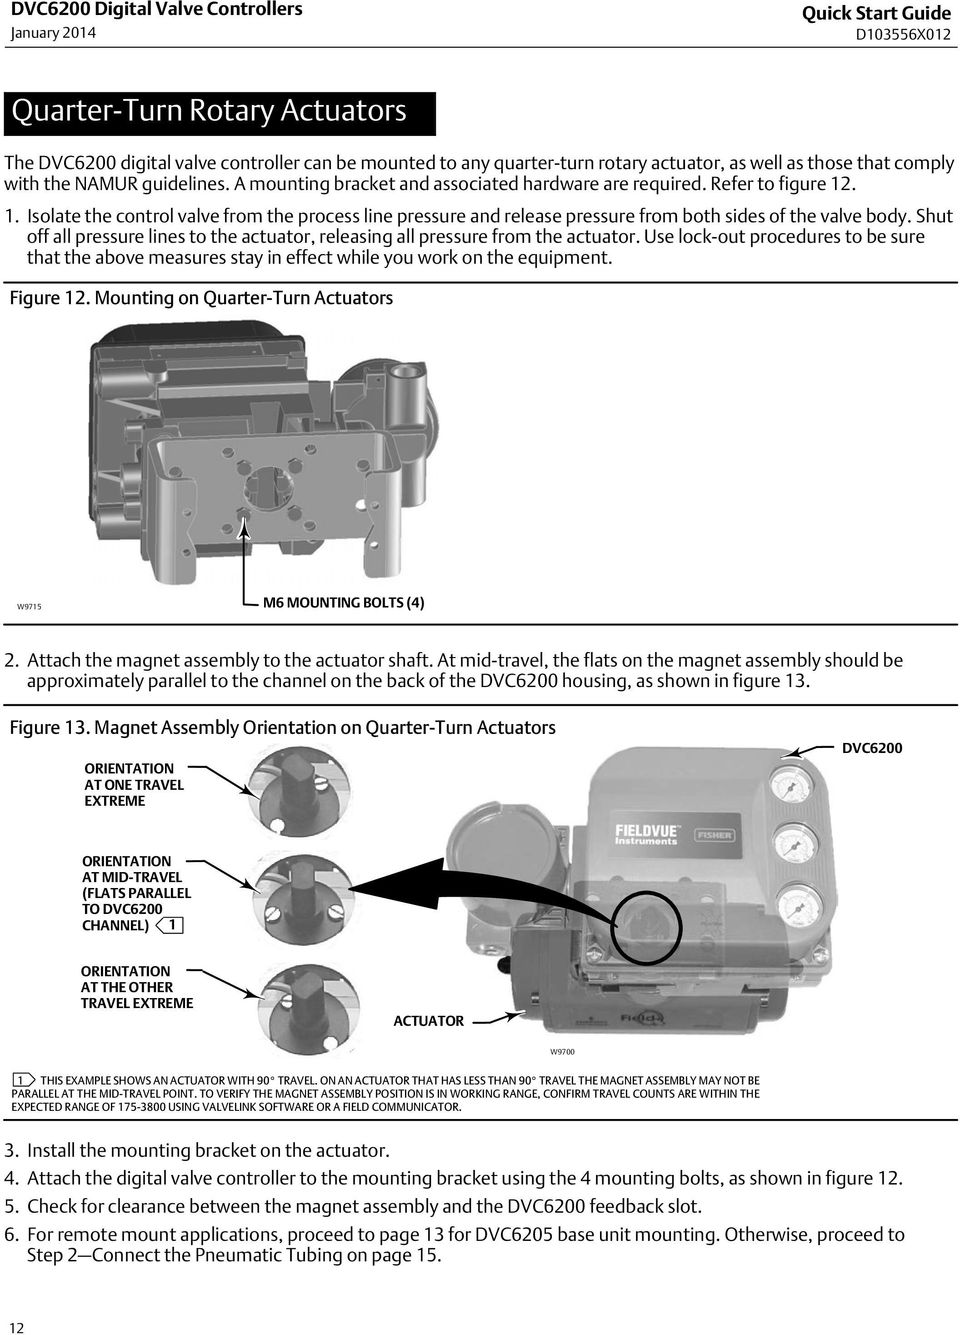 . 1. Isolate the control valve from the process line pressure and release pressure from both sides of the valve body.